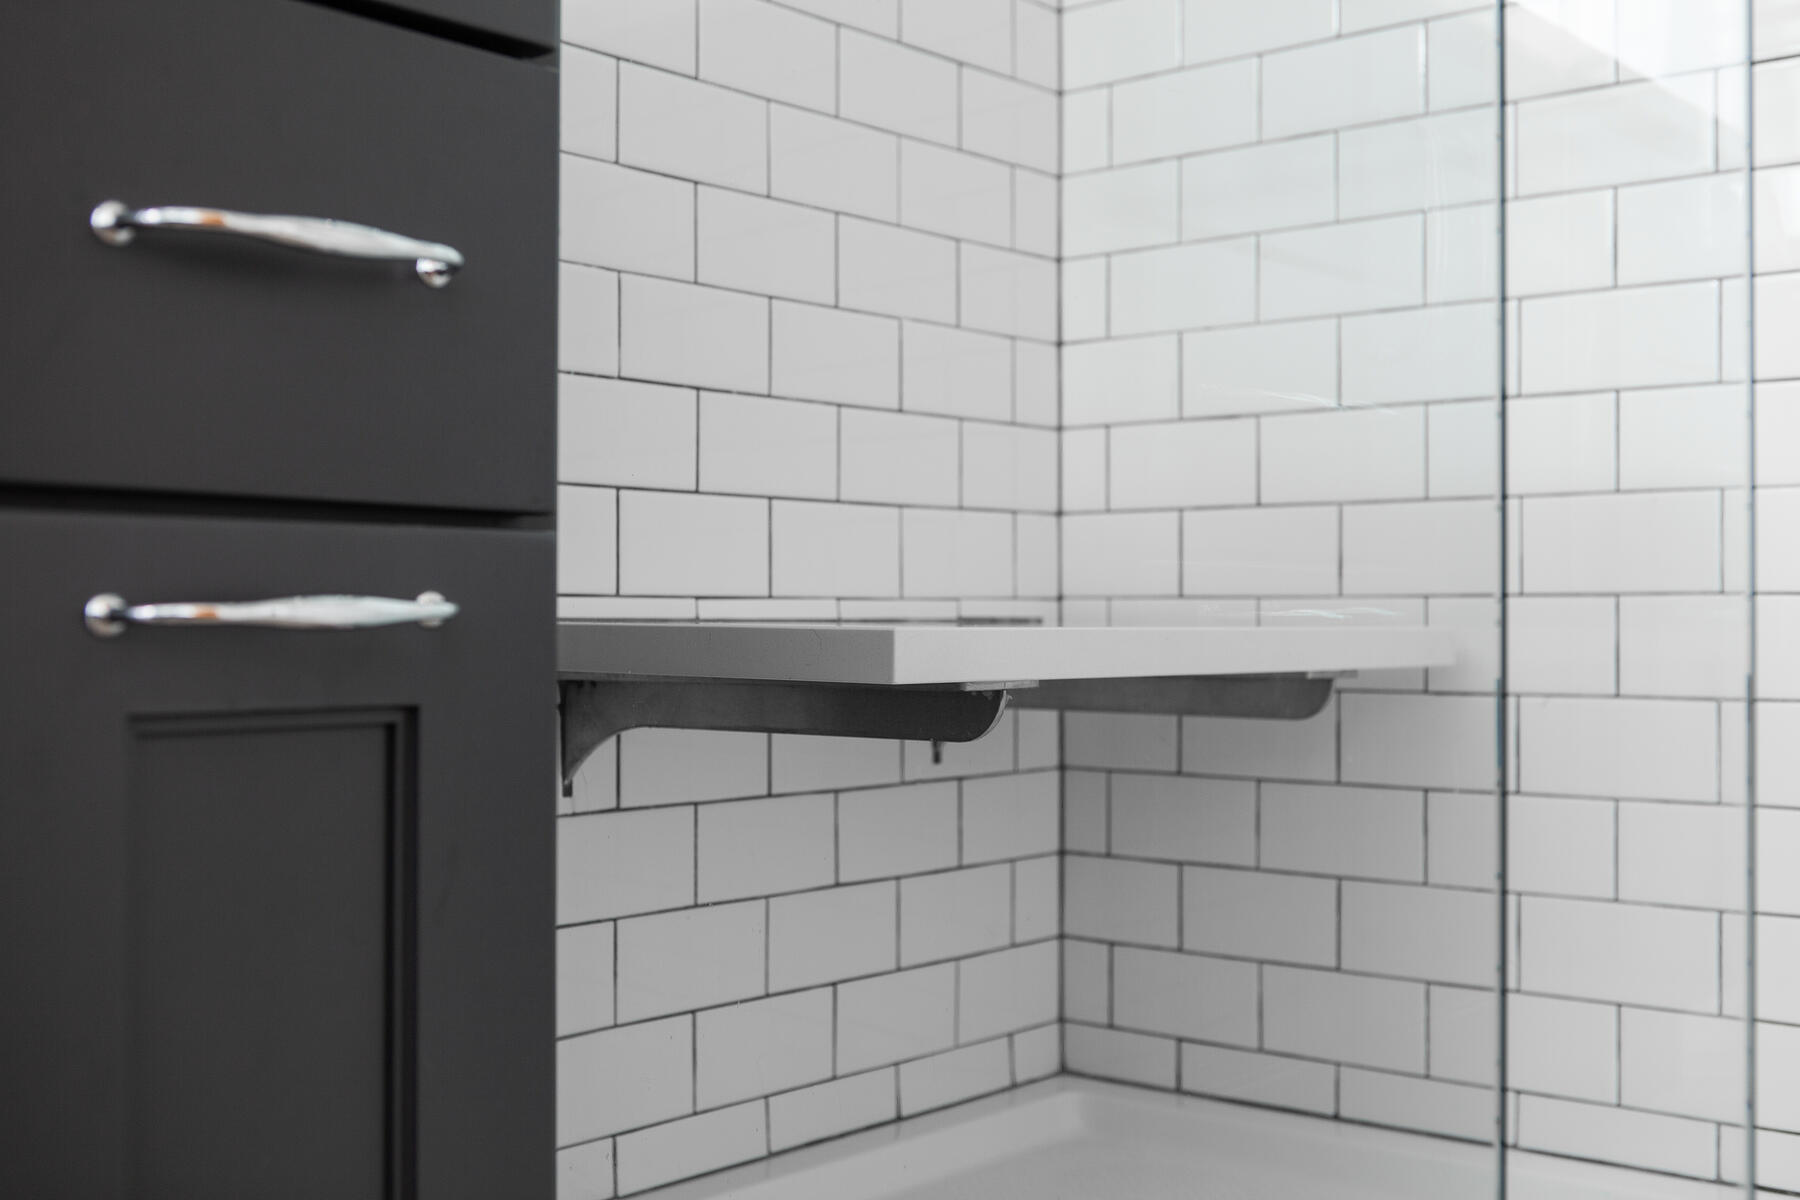 Classic white subway tile make a small bathroom feel larger and compliments the black cabinetry